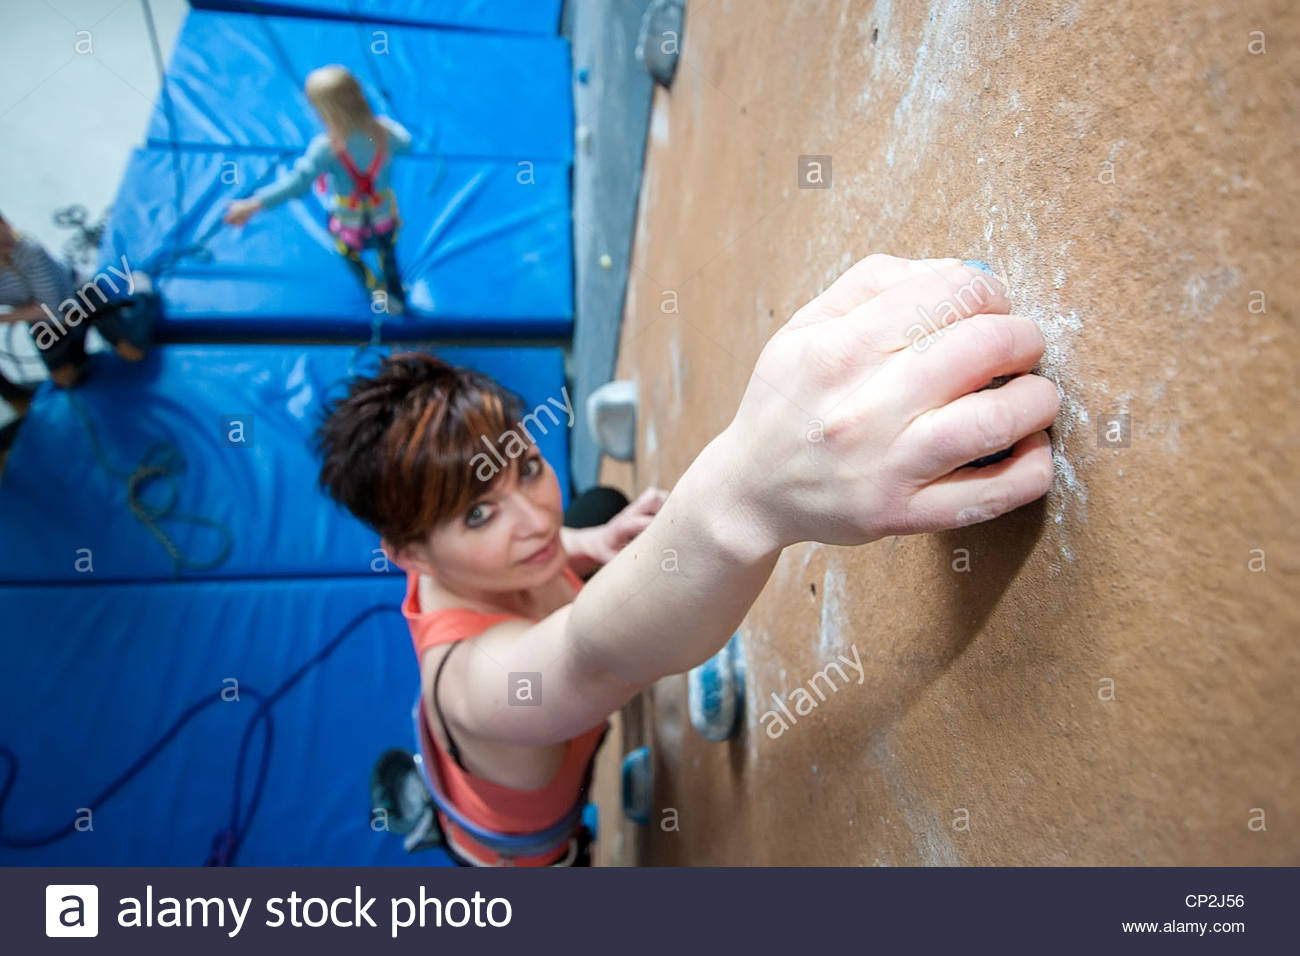 A woman climbing in an indoor climbing wall. Photo taken with a wide angle lens - Stock Image